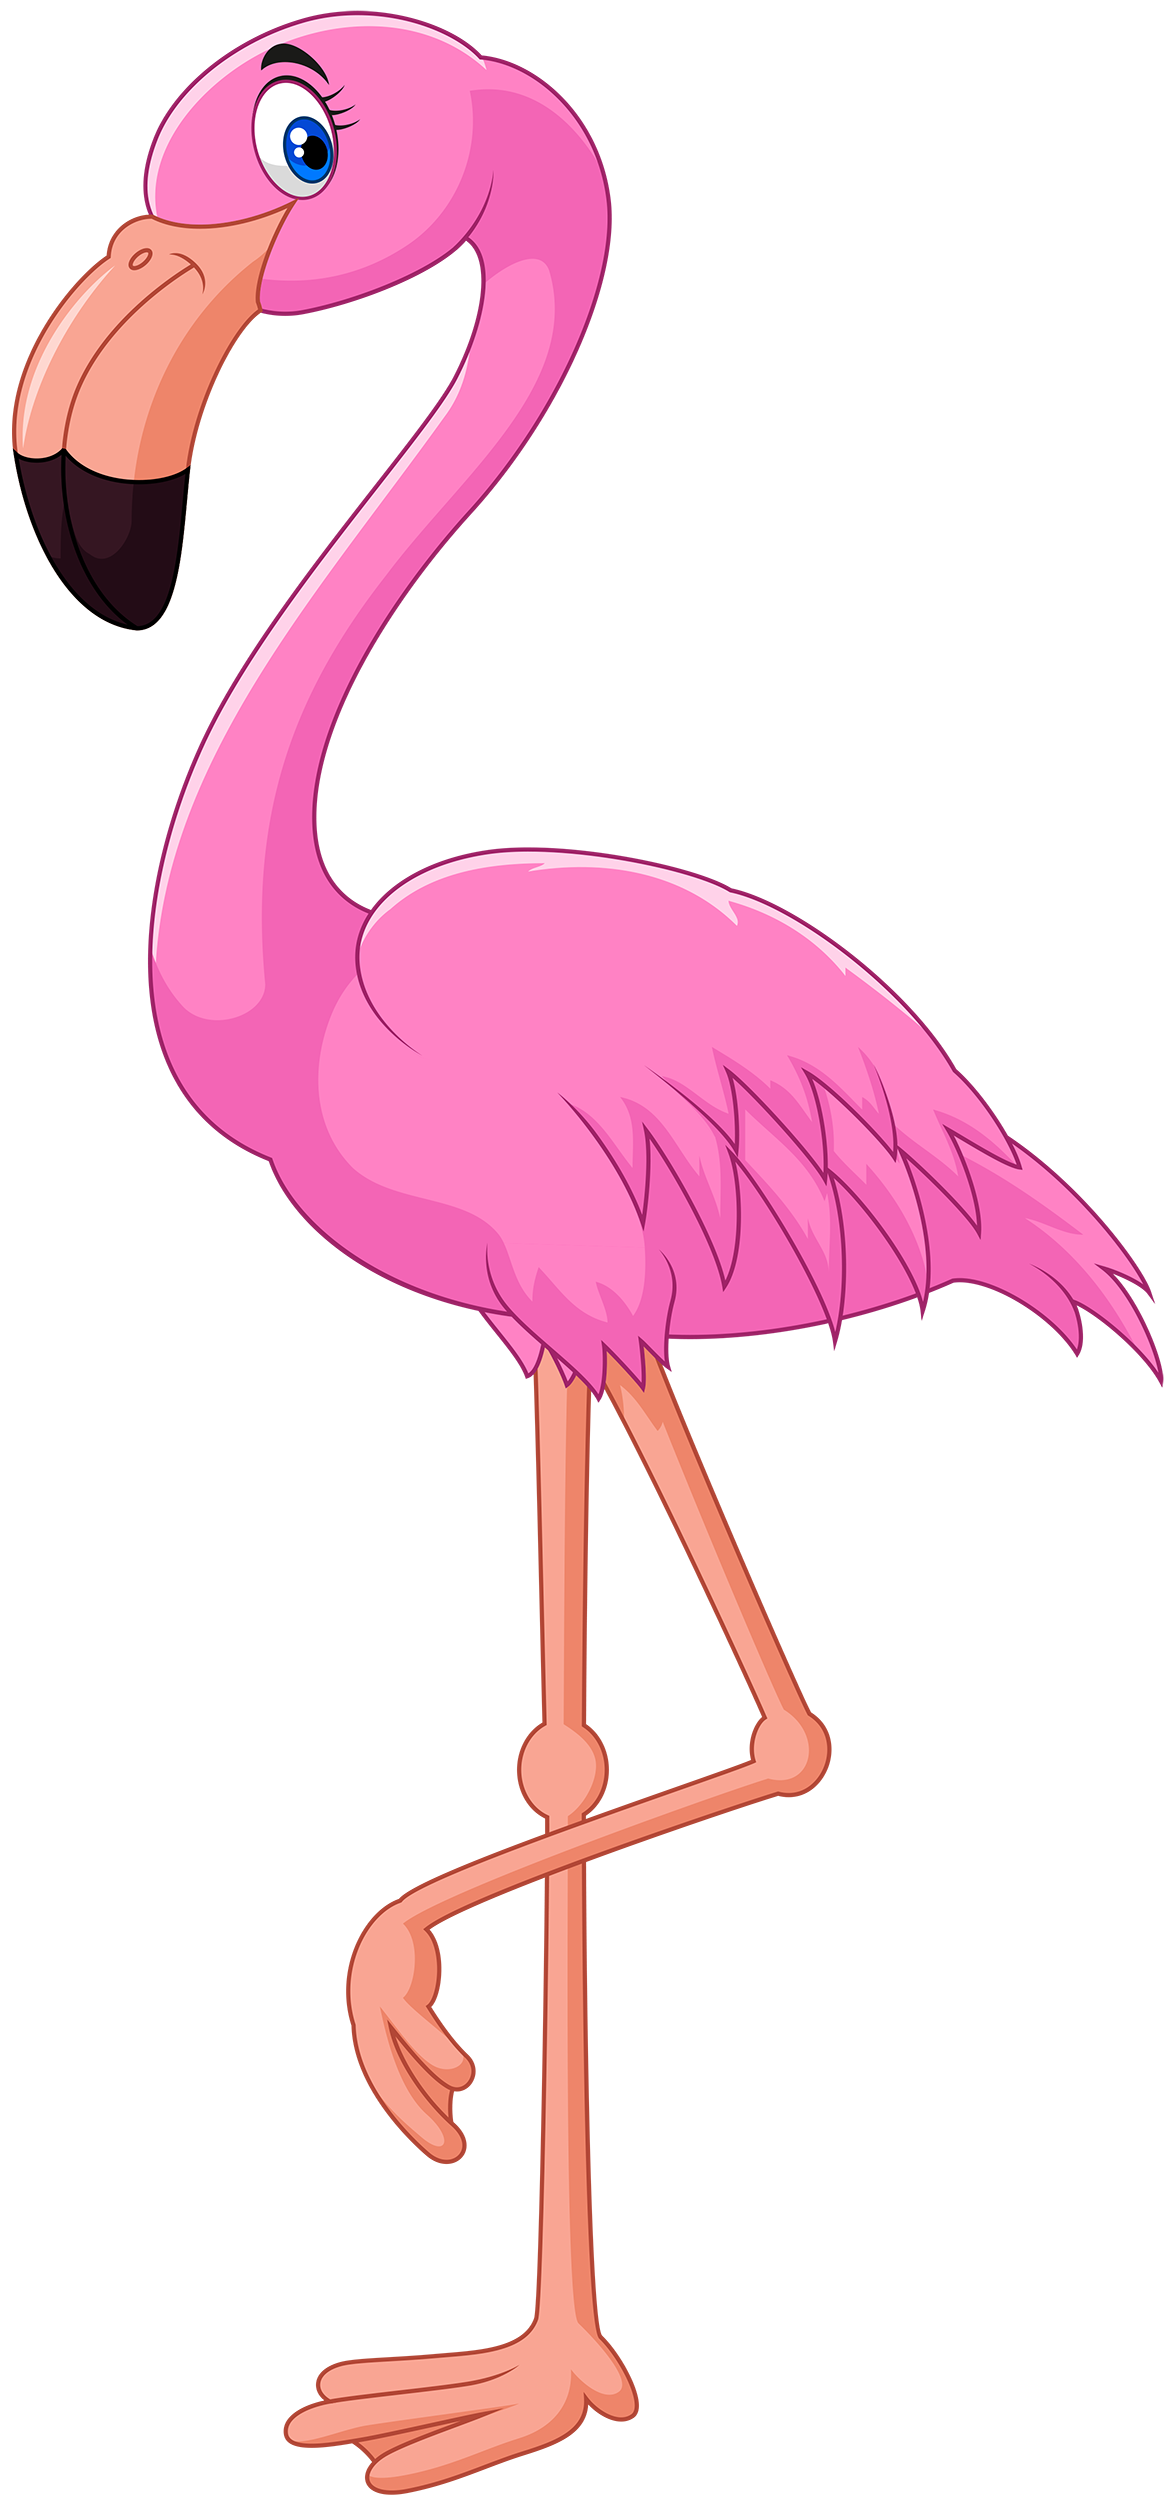 pink flamingo clipart web clipart pink flamingo theme pinterest rh pinterest com flamingo clipart free flamingo clipart free